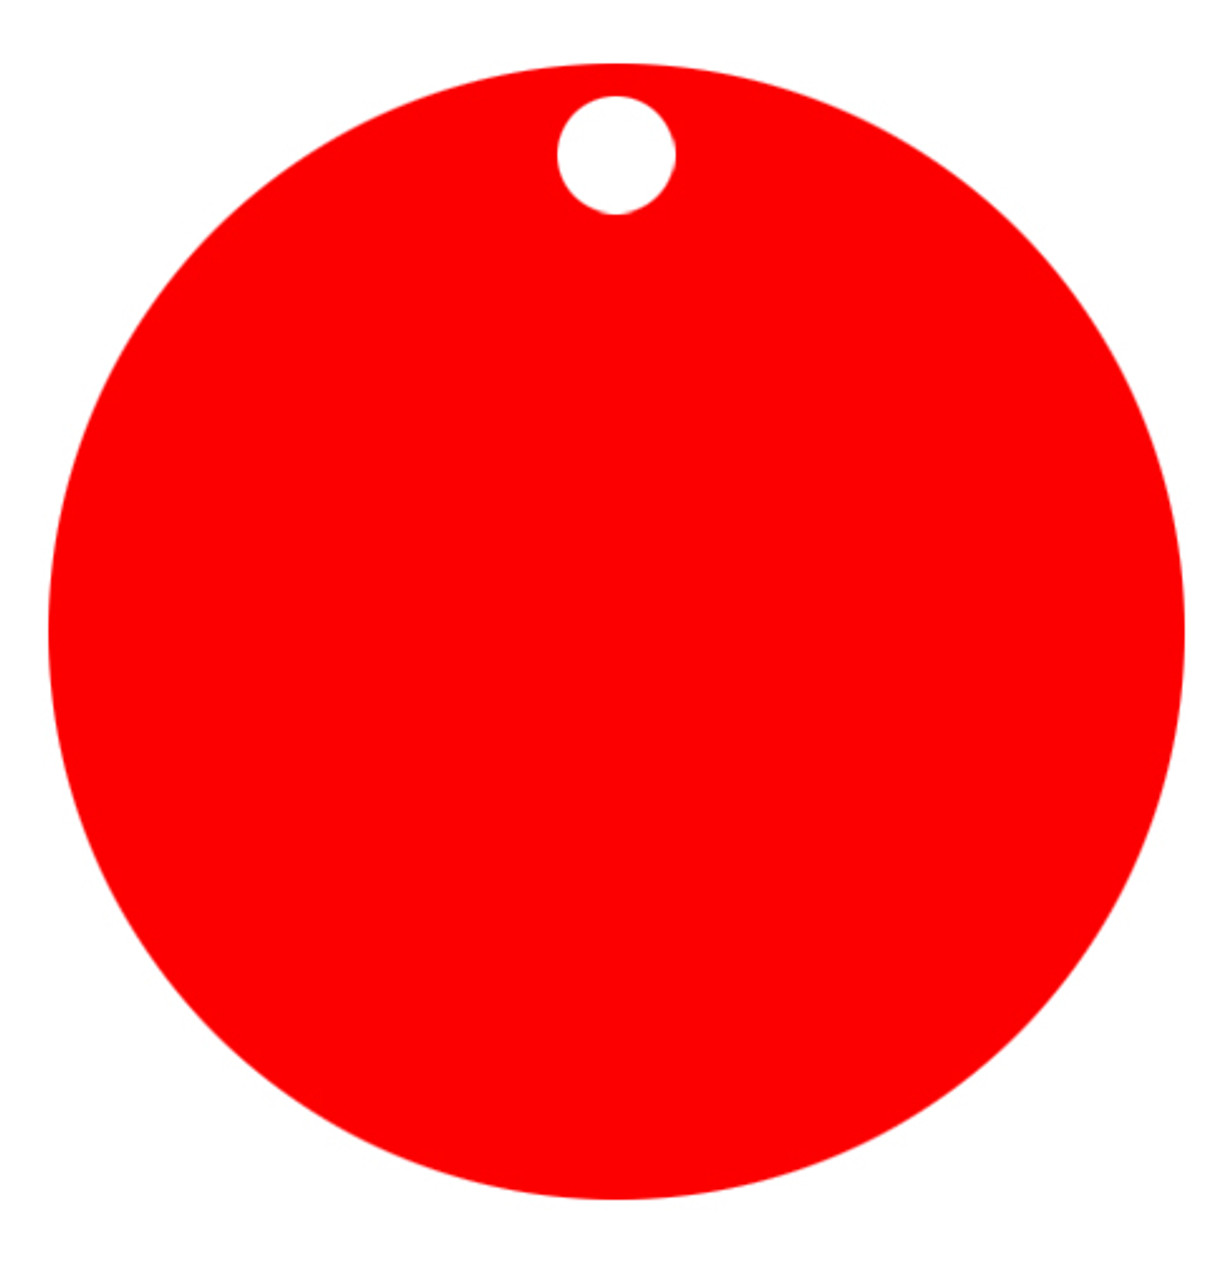 Red Anodized Aluminum 1.5 inch Circle Tag